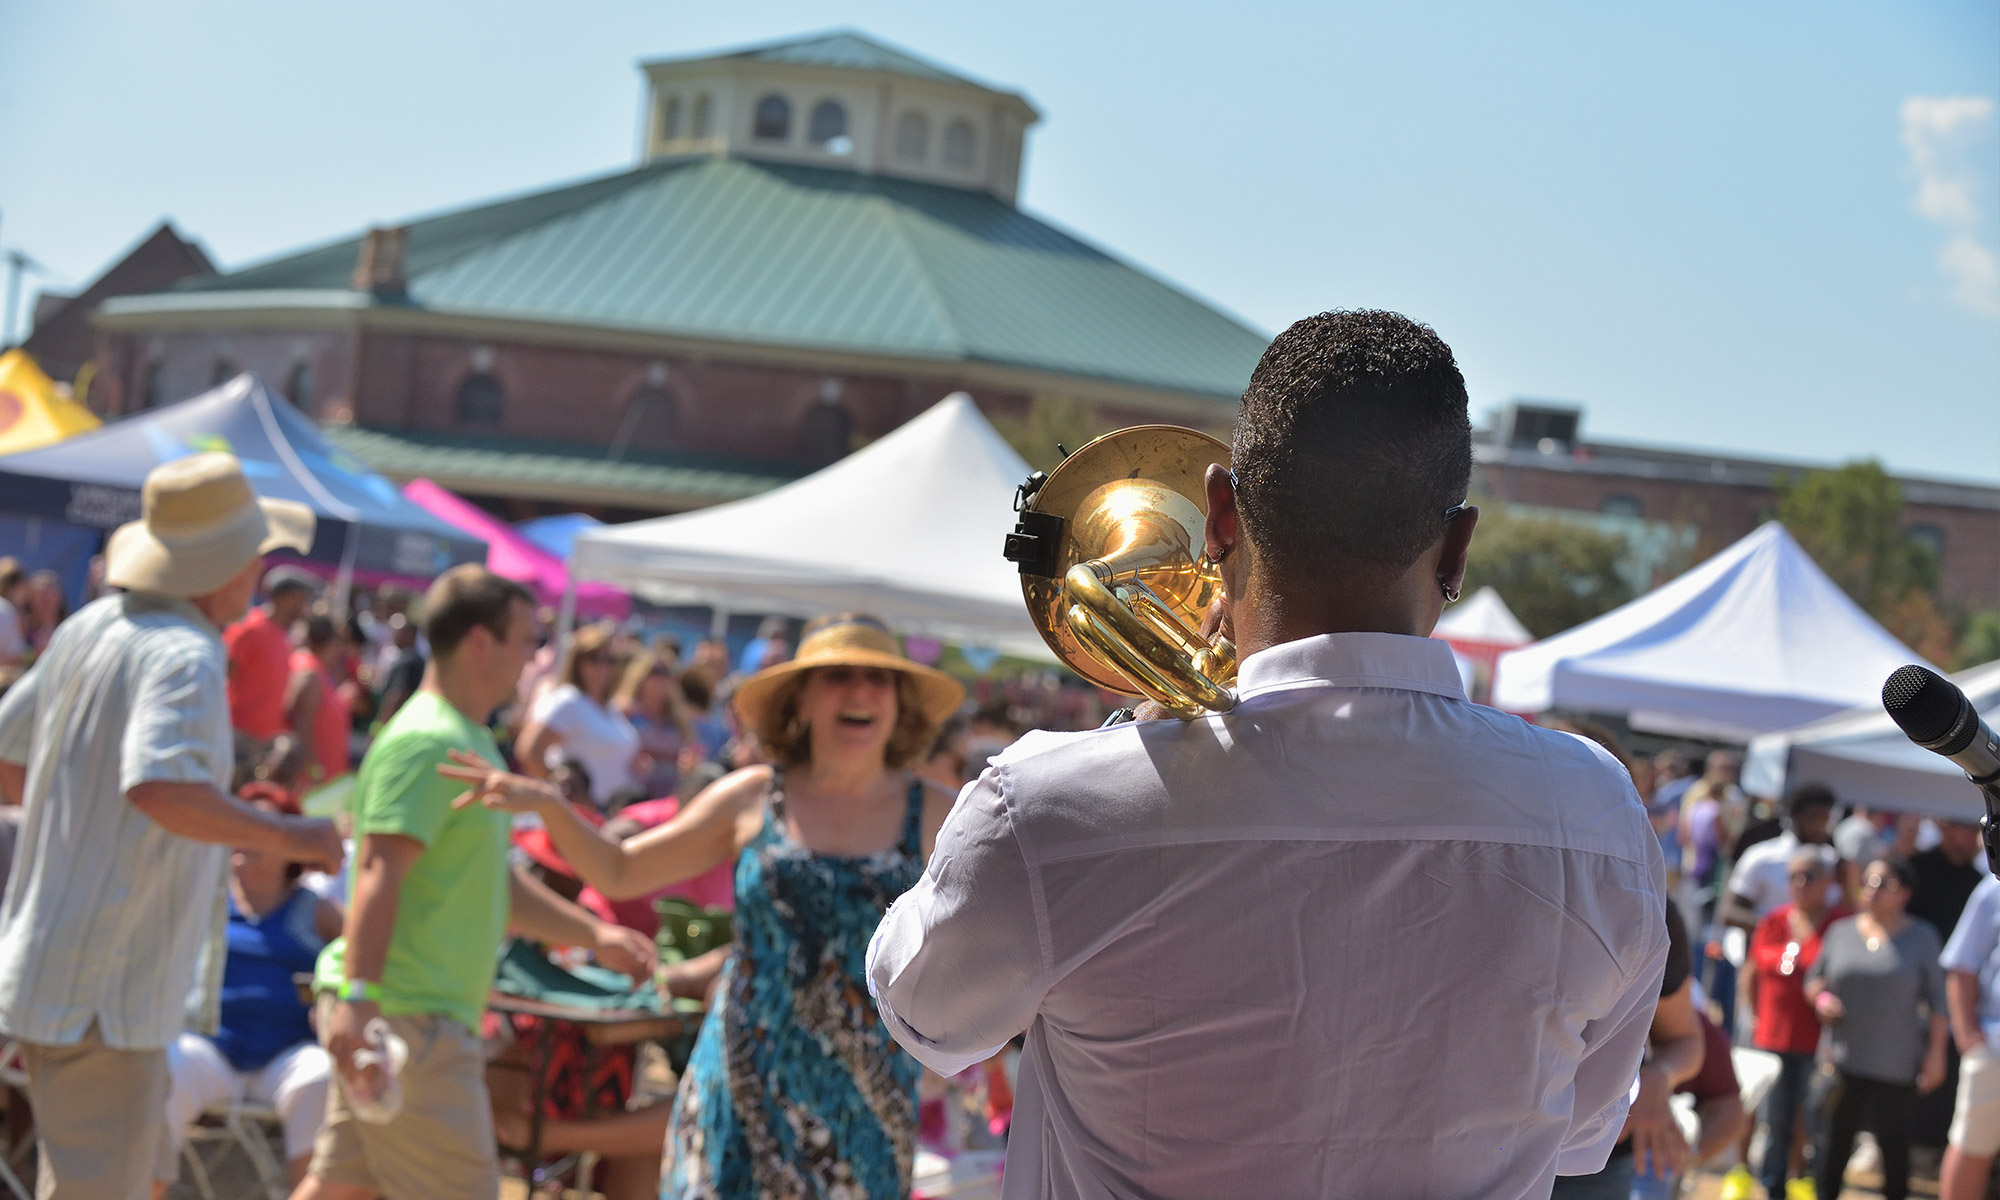 Festivals with City Table in Background - Petersburg, VA